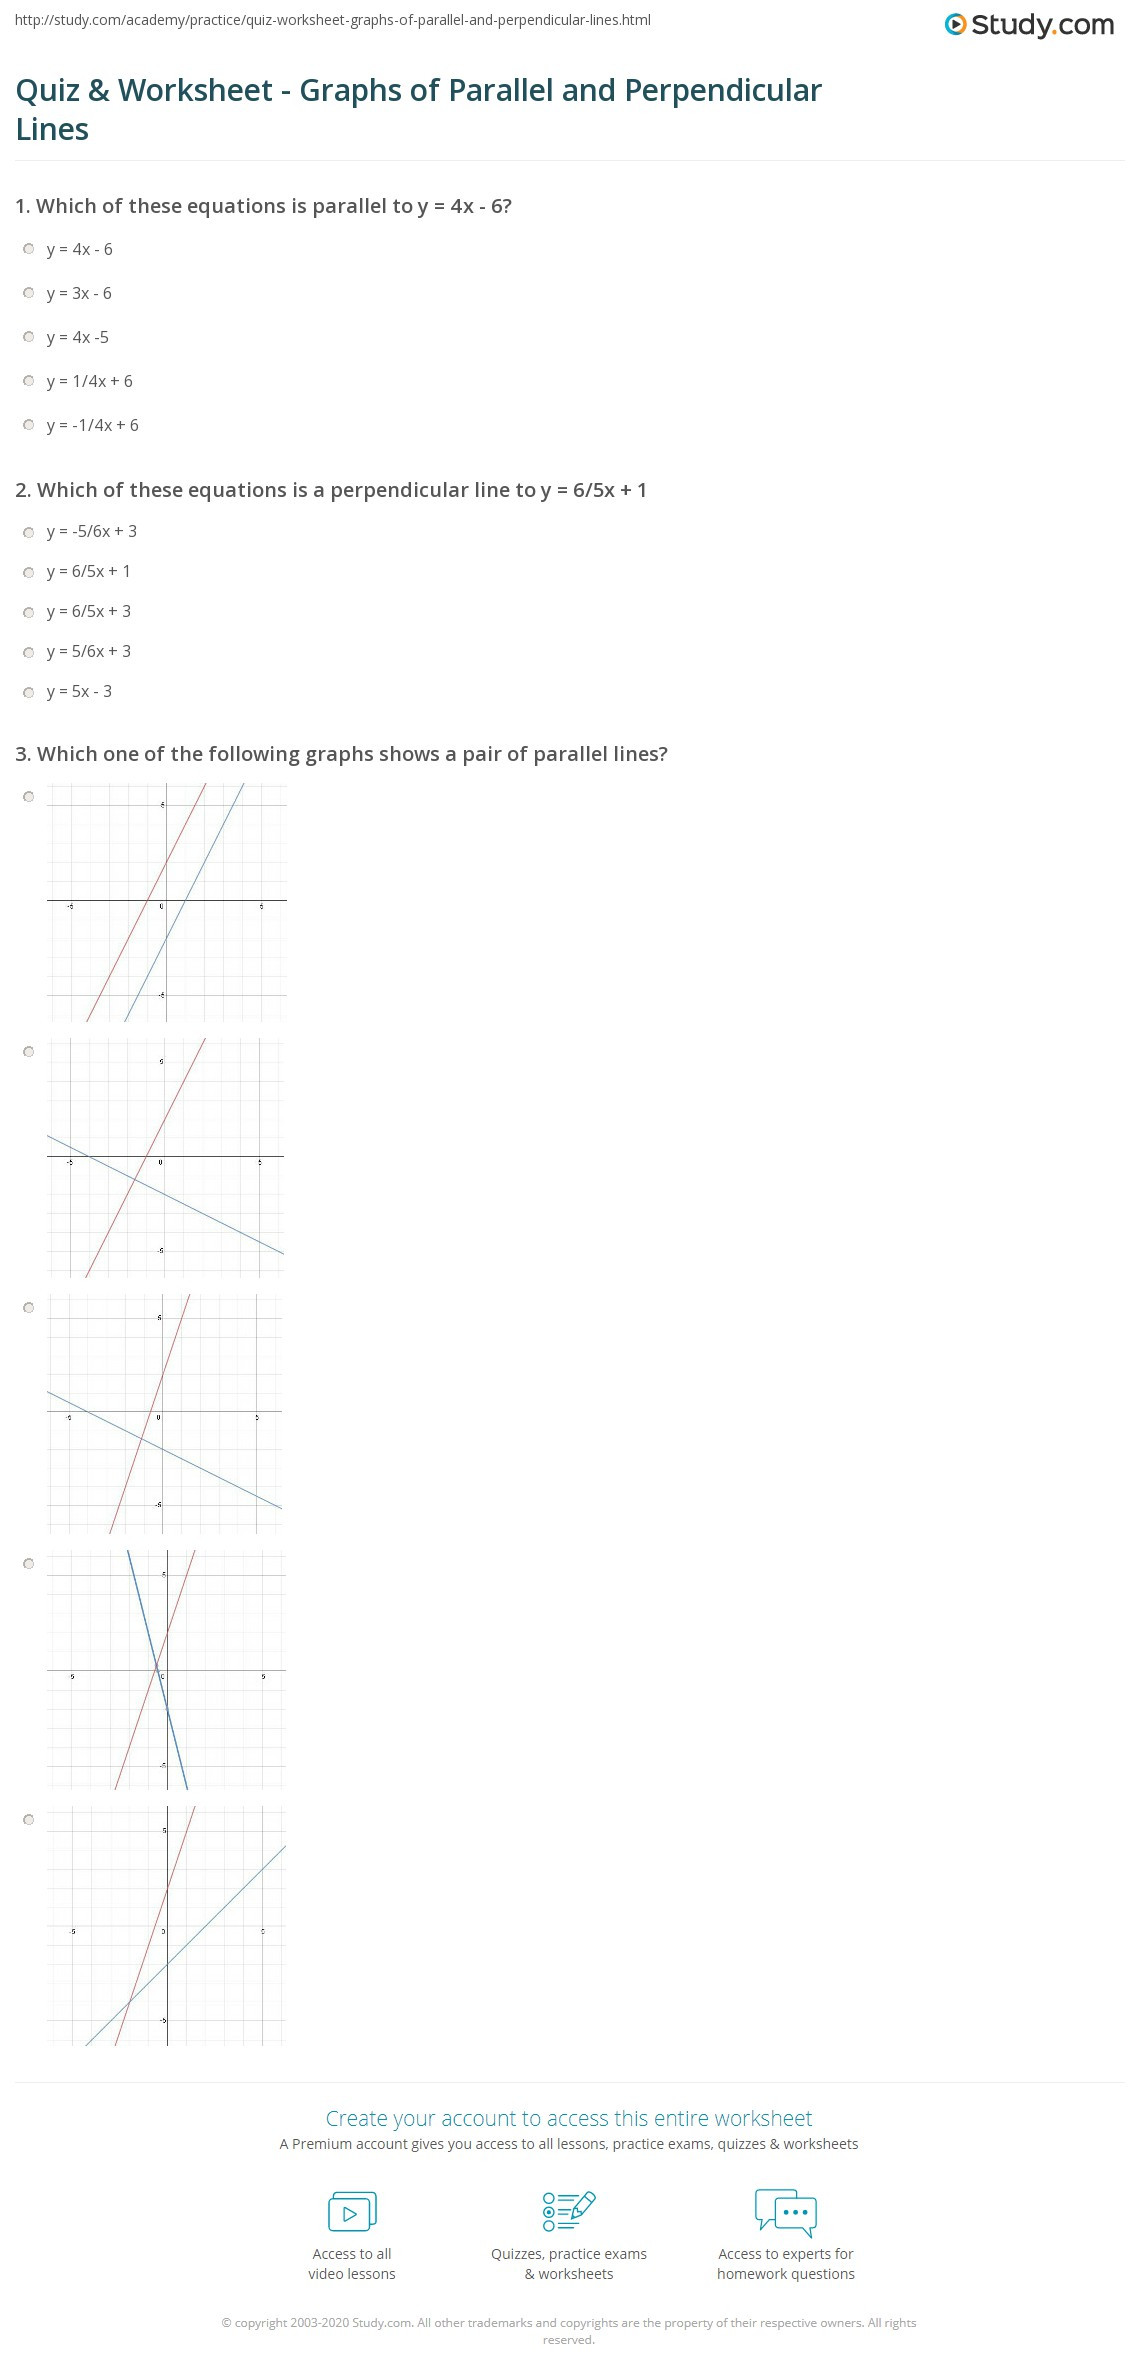 Parallel and Perpendicular Lines Worksheet Quiz & Worksheet Graphs Of Parallel and Perpendicular